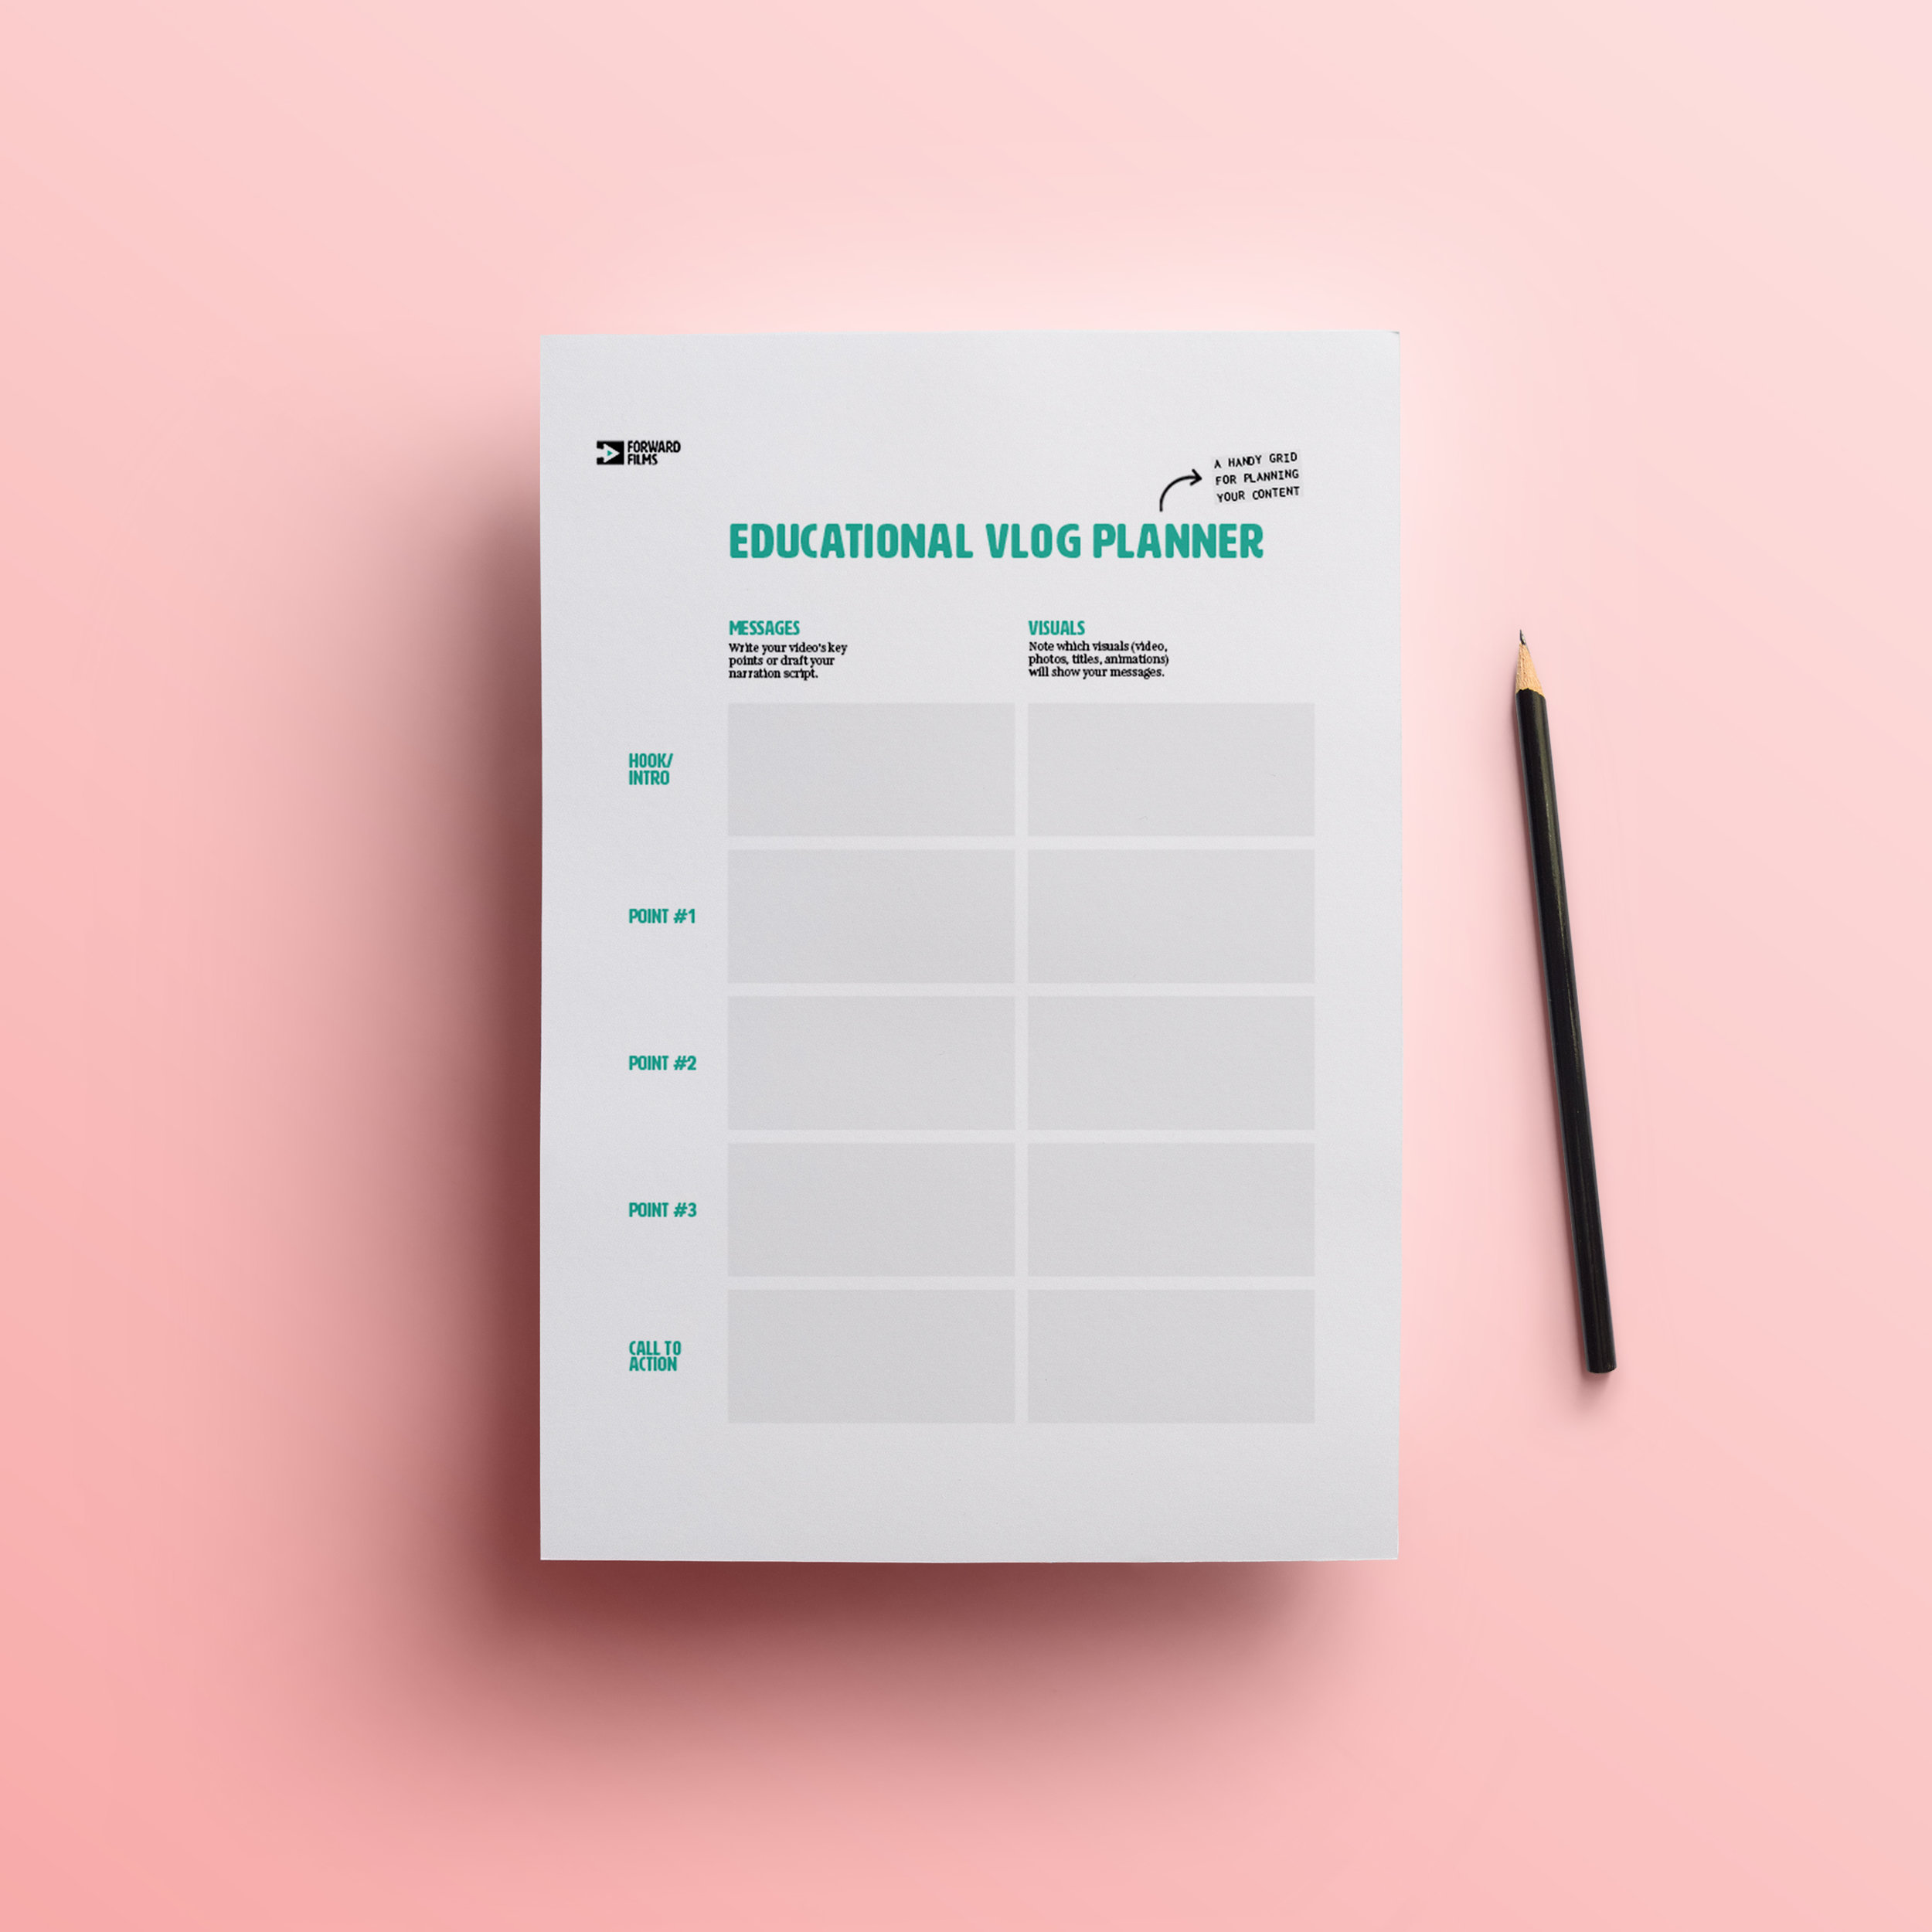 Educational vlog outline mockup coral pencil.jpg